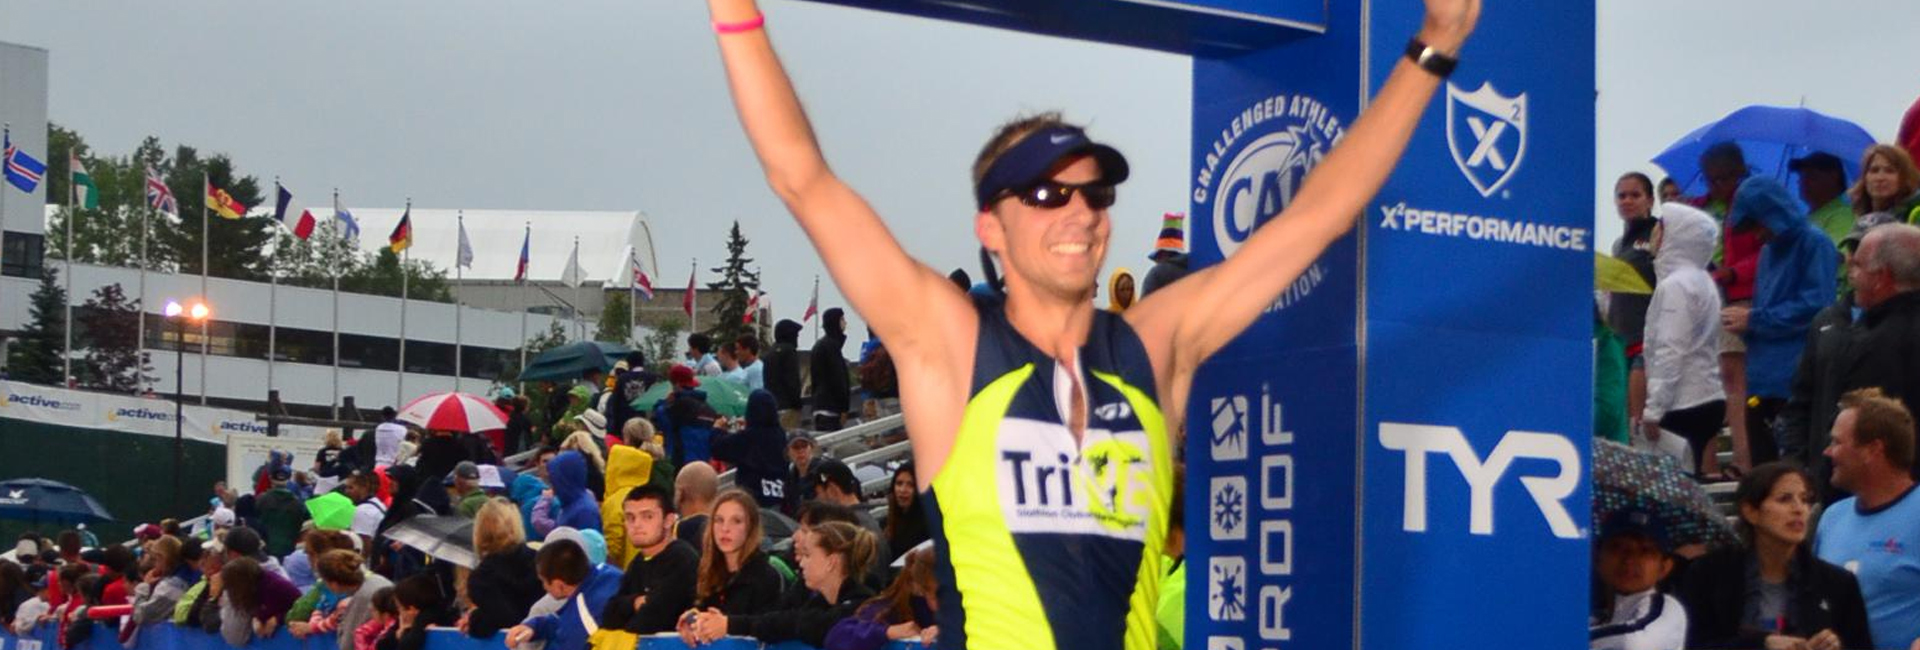 Athlete runner celebrating after completing triathlon race